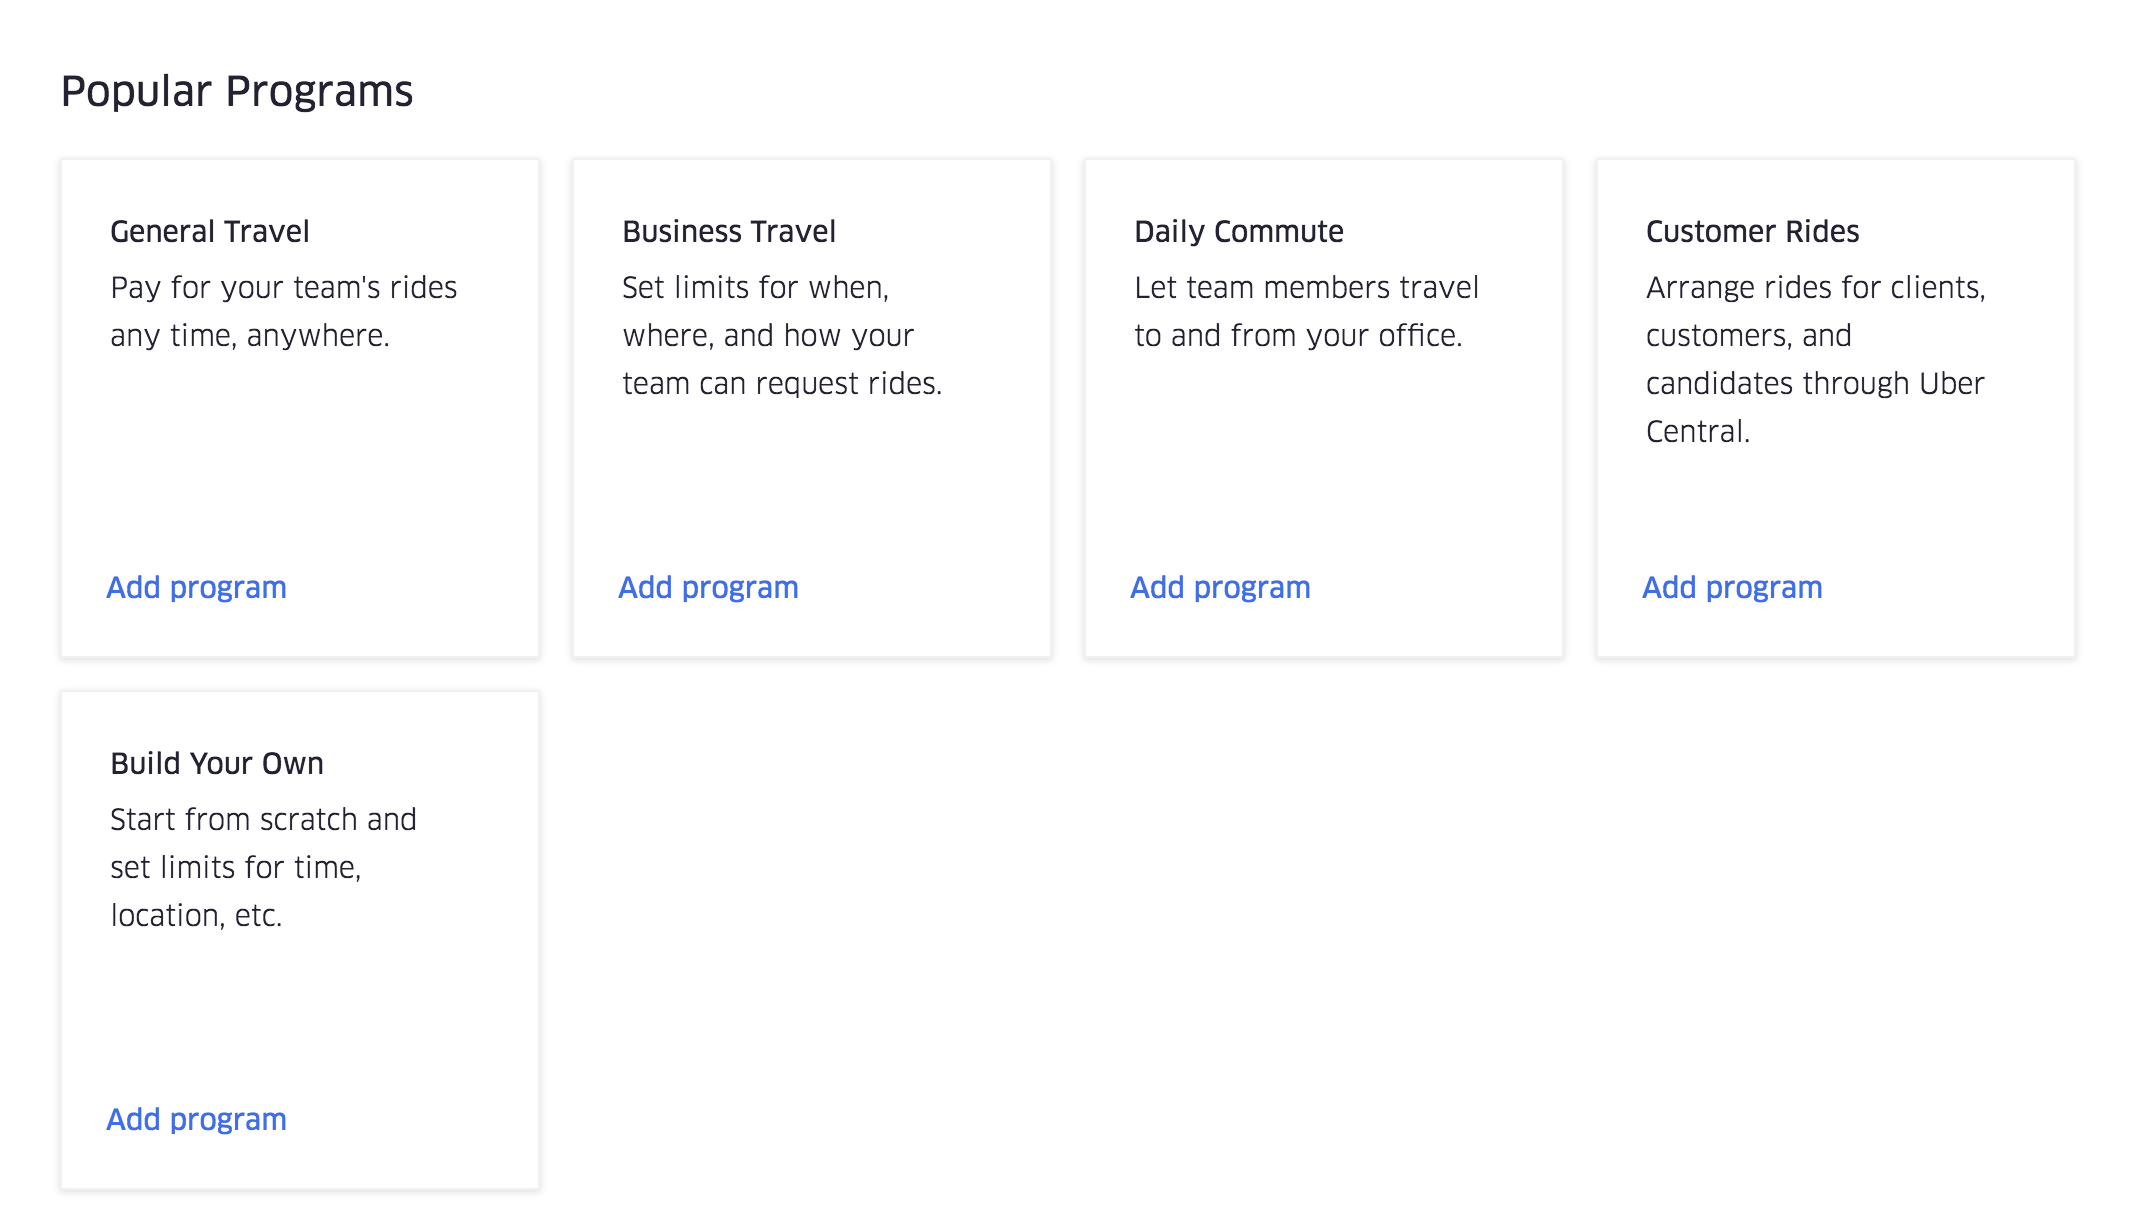 A screenshot of the Popular Programs section of the Programs tab in the Uber for Business dashboard.